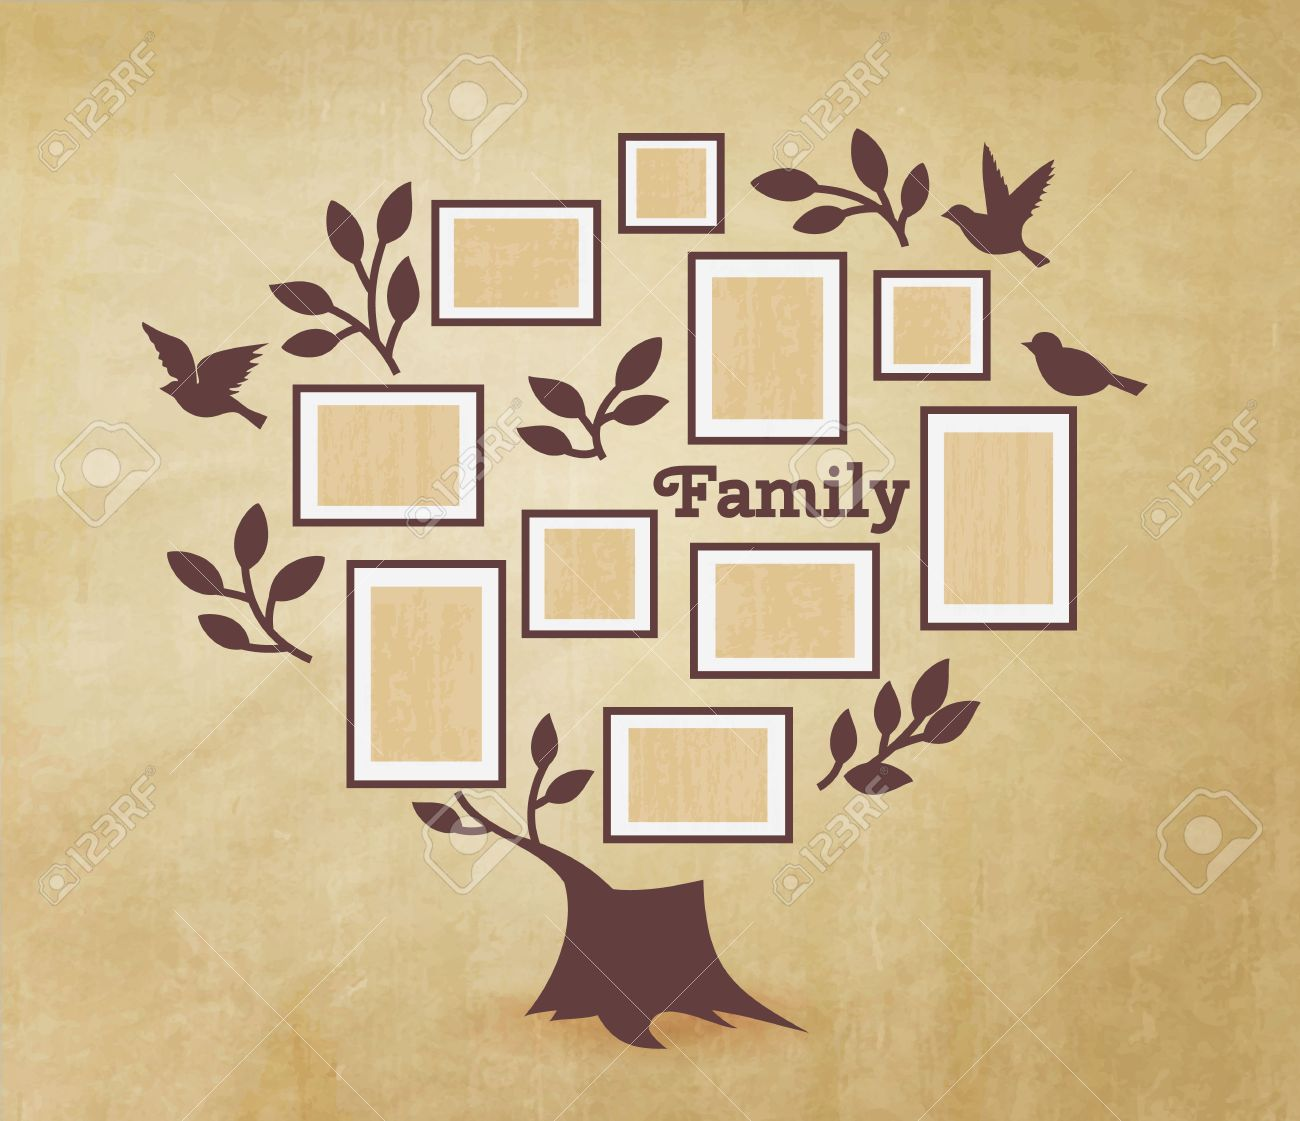 Memories tree with picture frames. Insert your photo into template frames. Collage vector illustration - 59591505